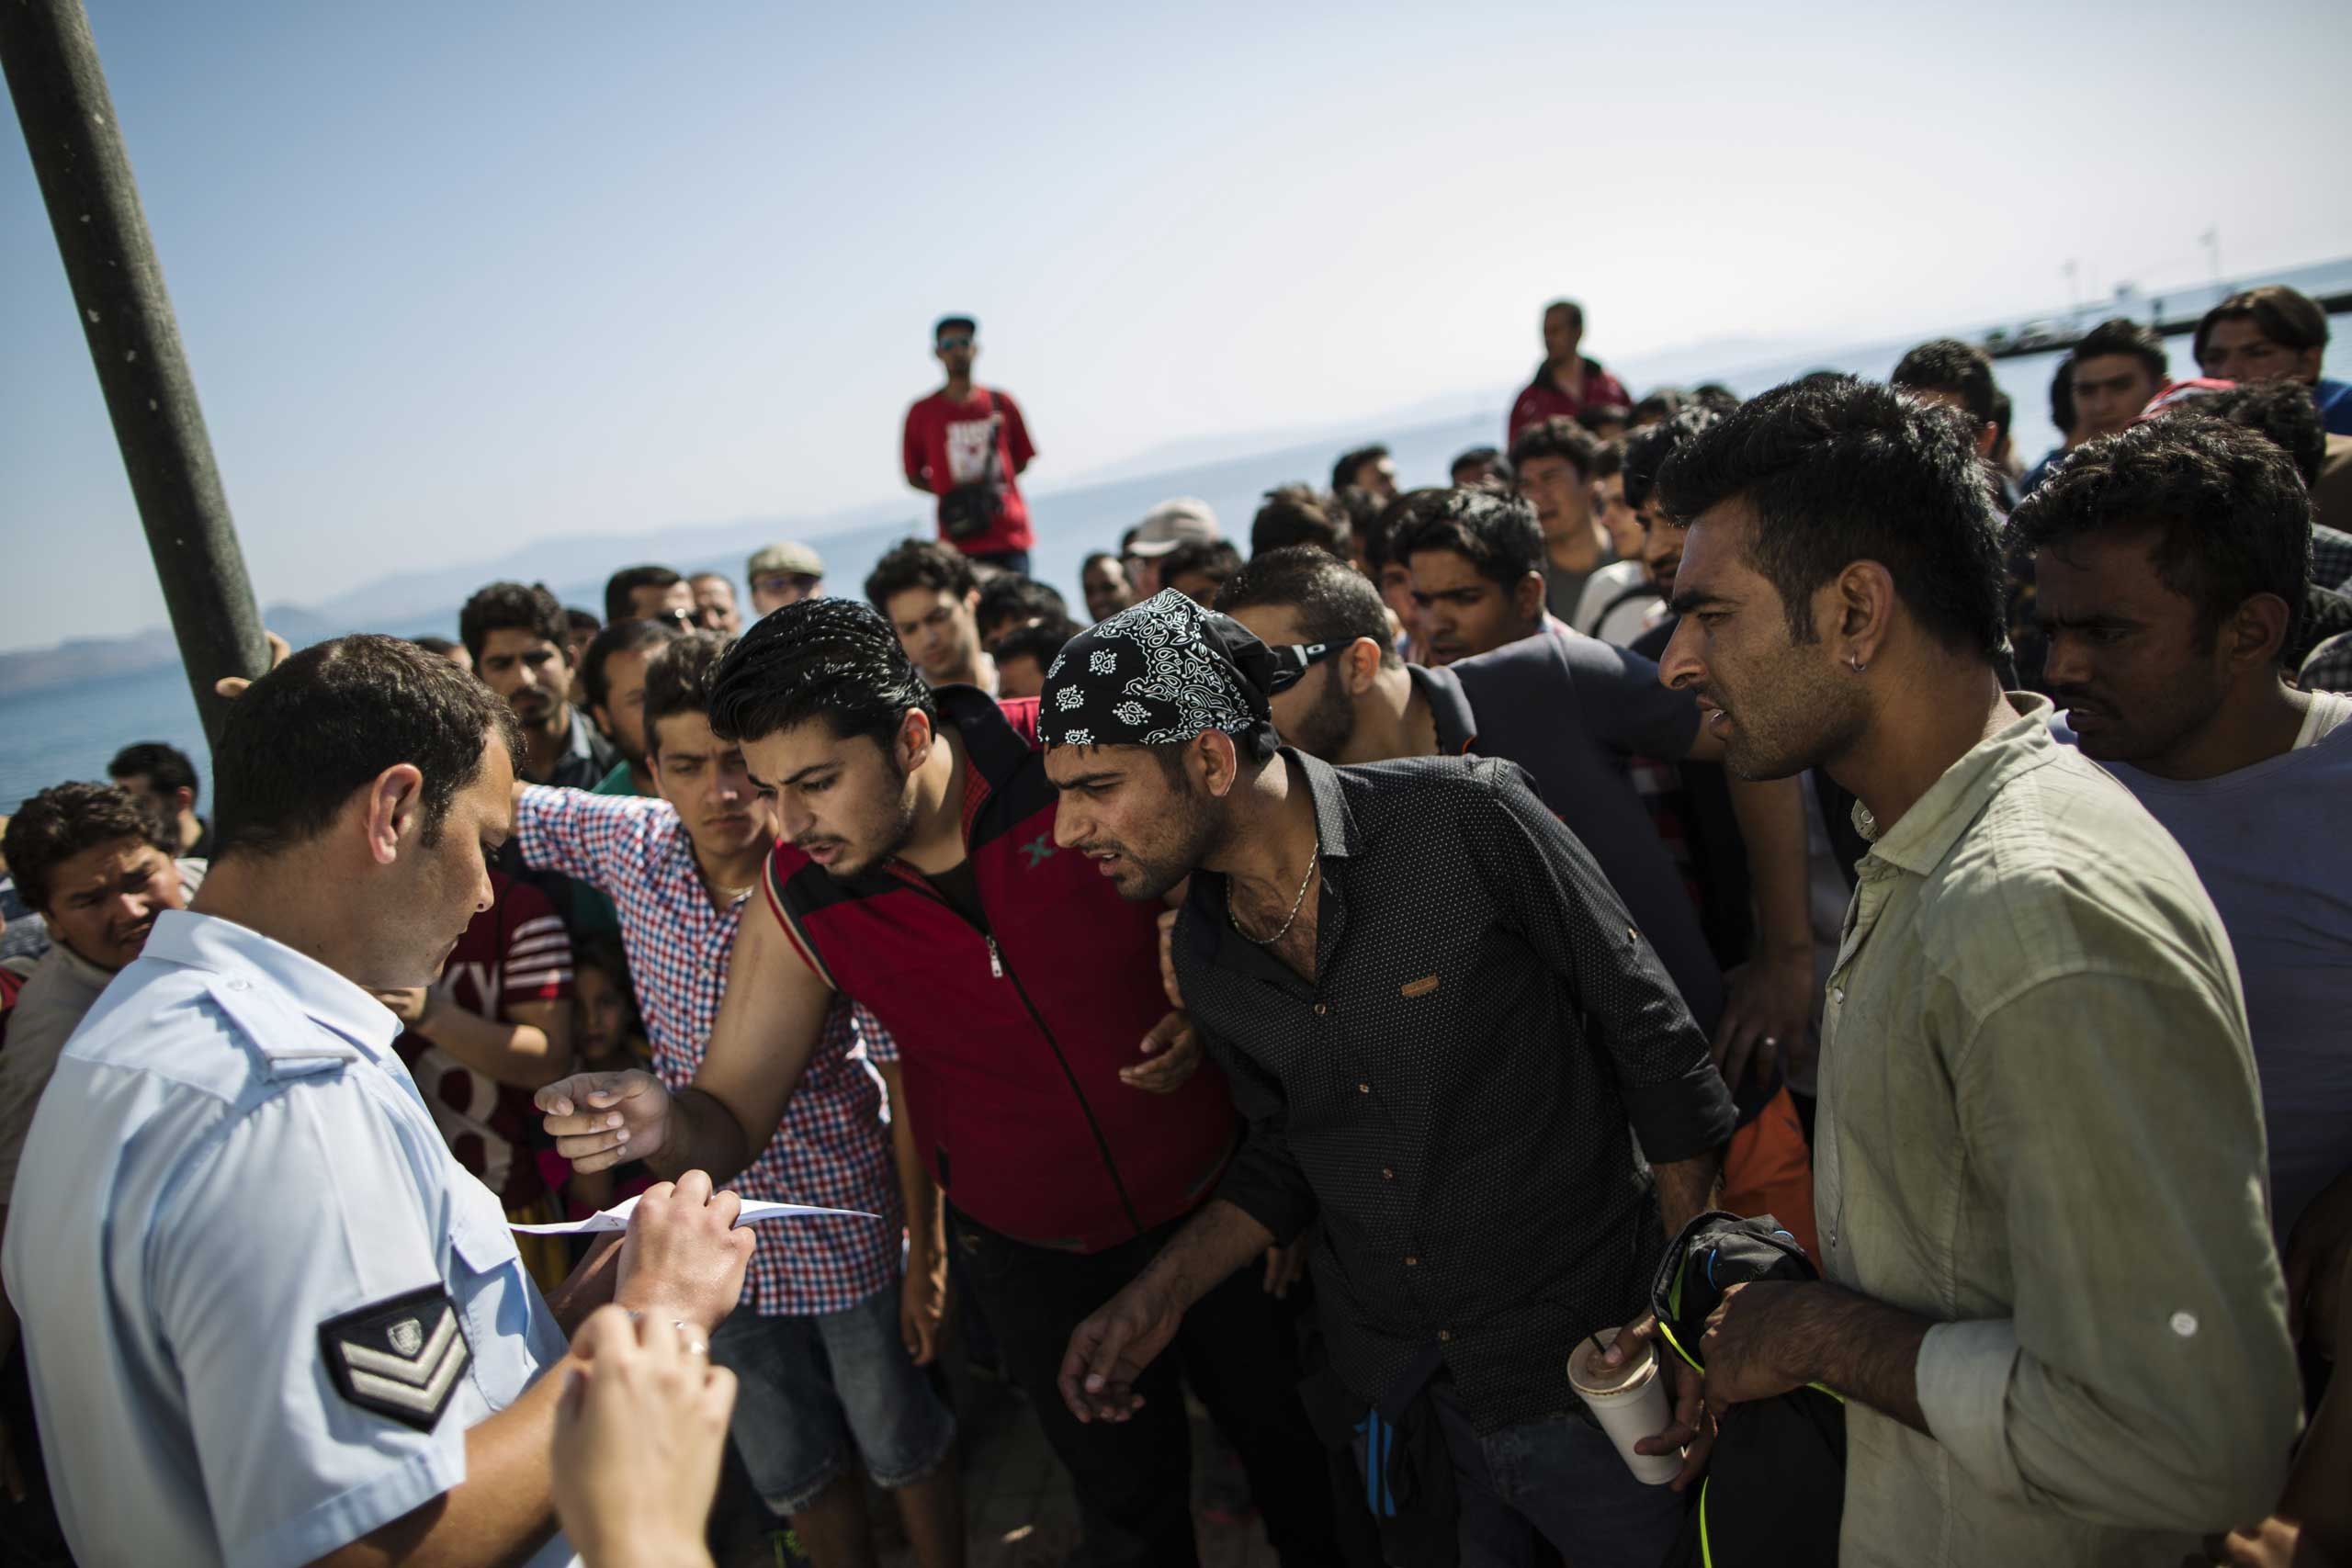 Migrants gather outside the police station on the Greek island of Kos to collect documentation to facilitate their onward journey into Europe on June 1, 2015.